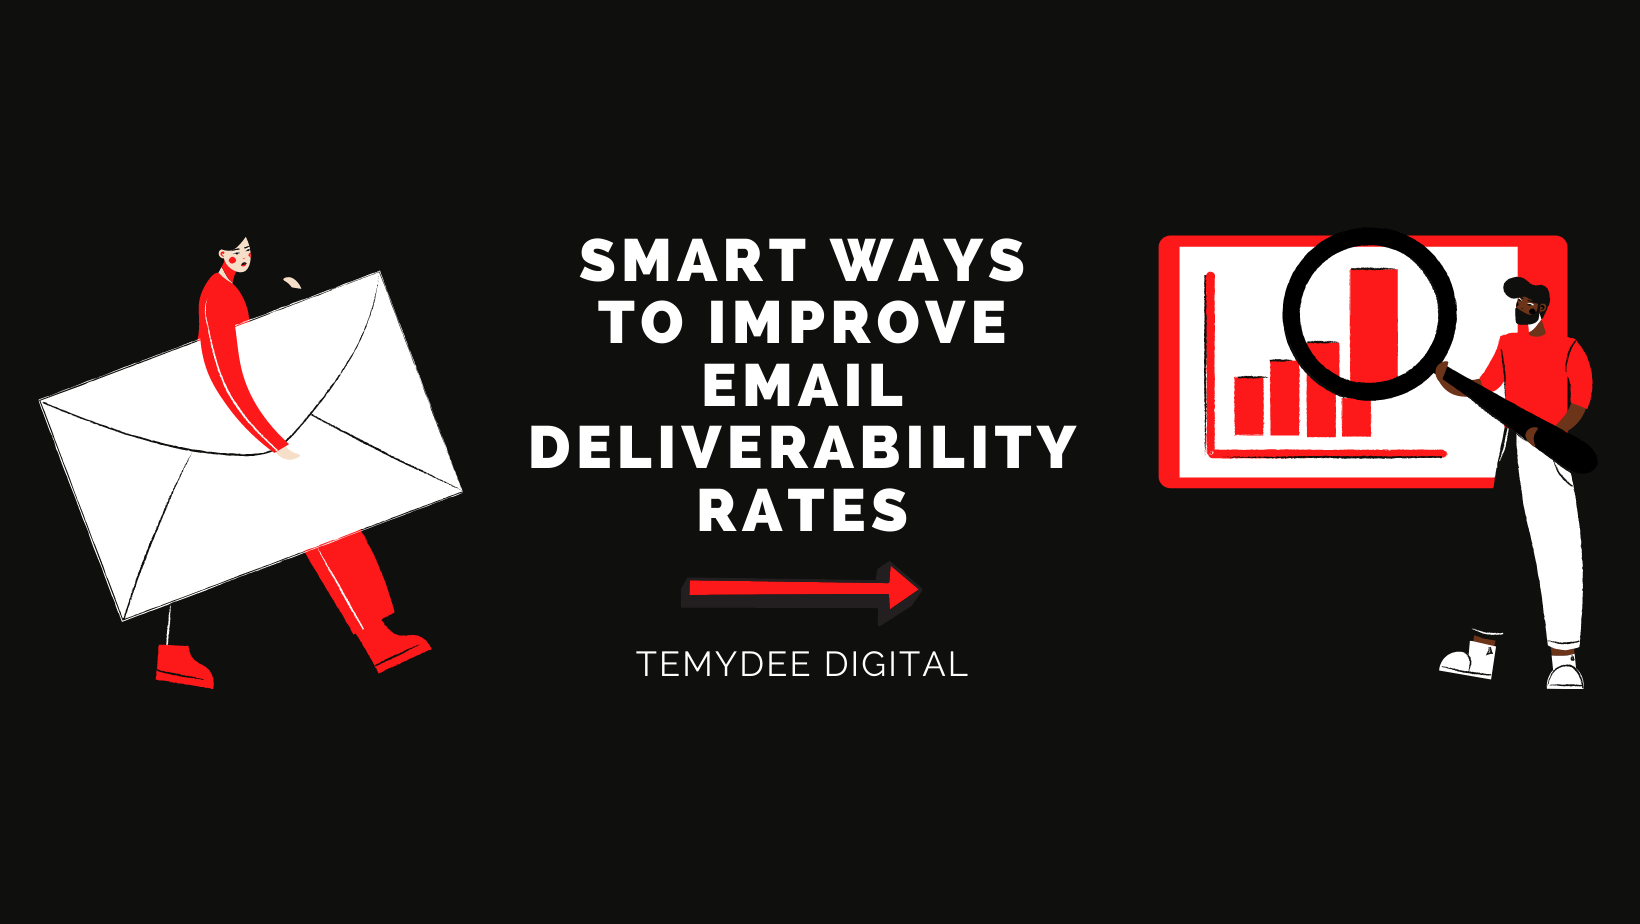 Smart Ways To Improve Email Deliverability Rates